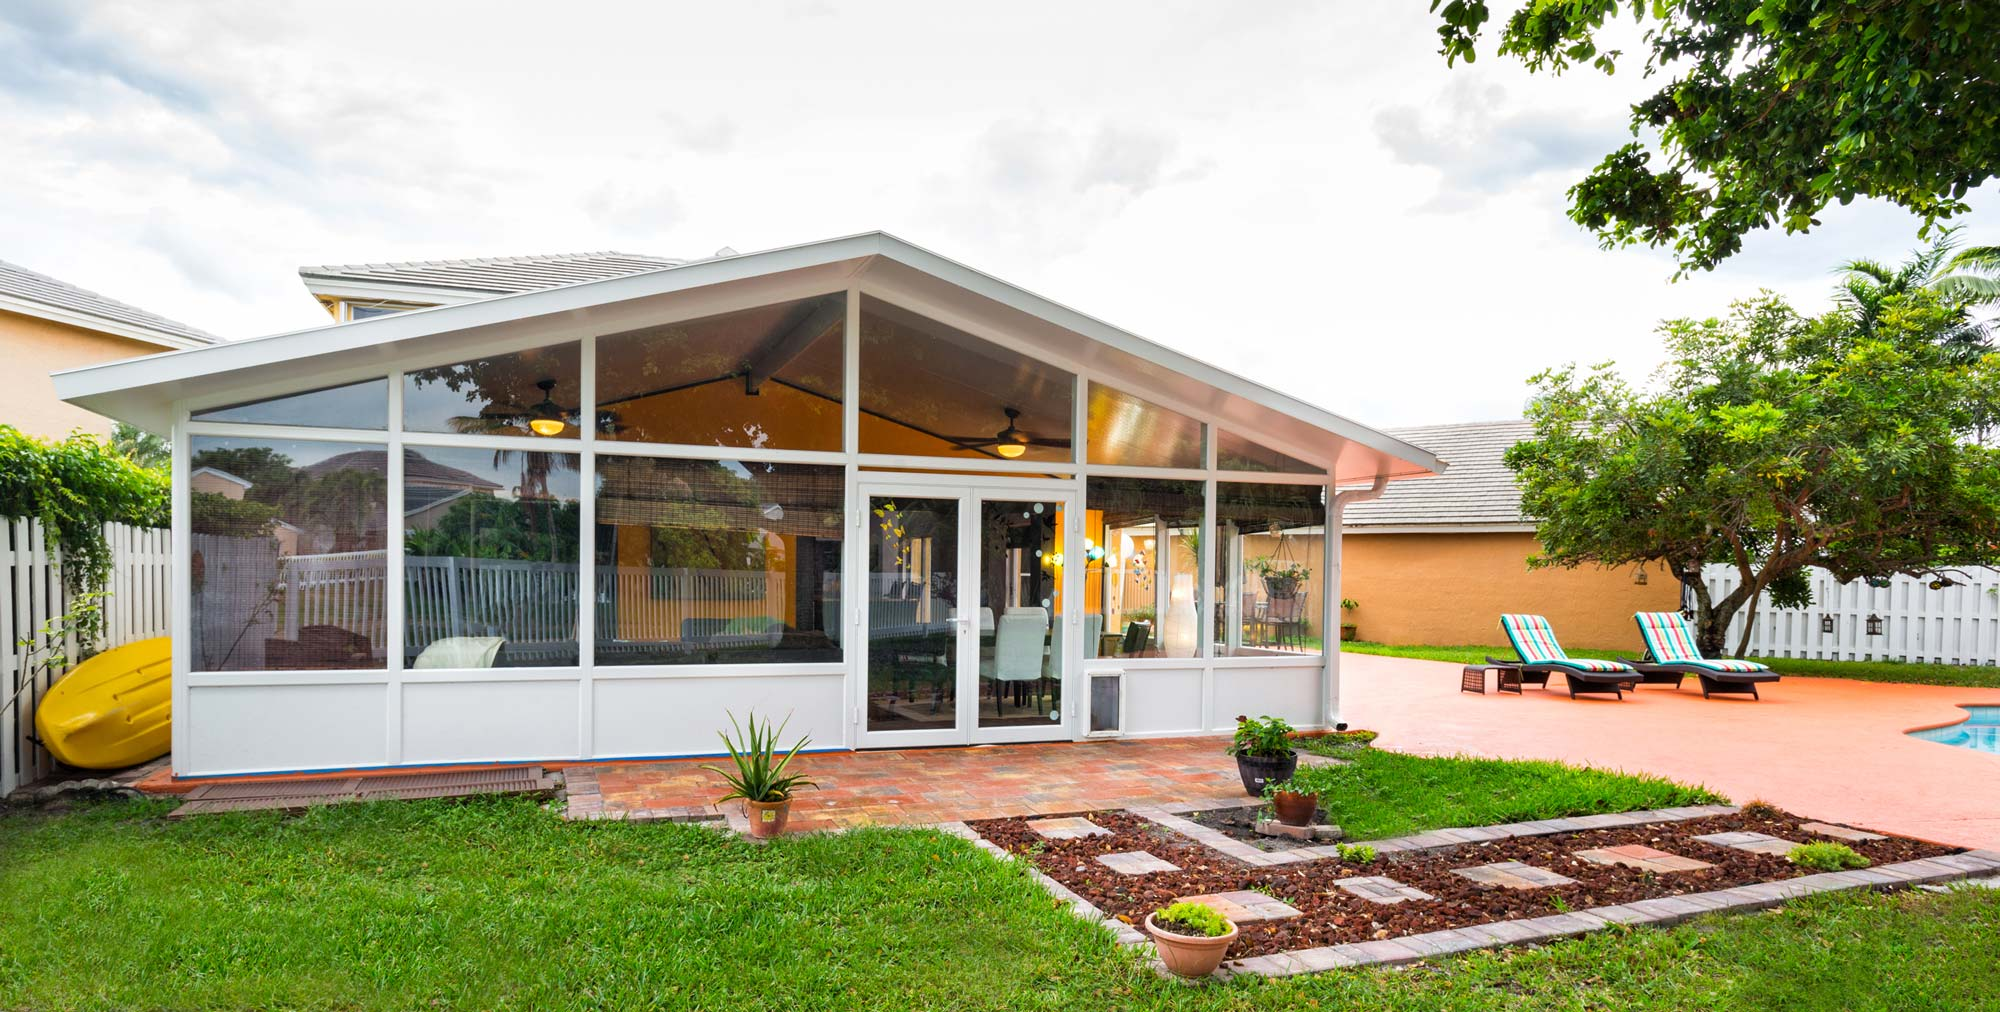 Sunroom-with-a-gable-roof-and-insulated-impact-glass-for-the-ultimate-in-comfort-and-protection